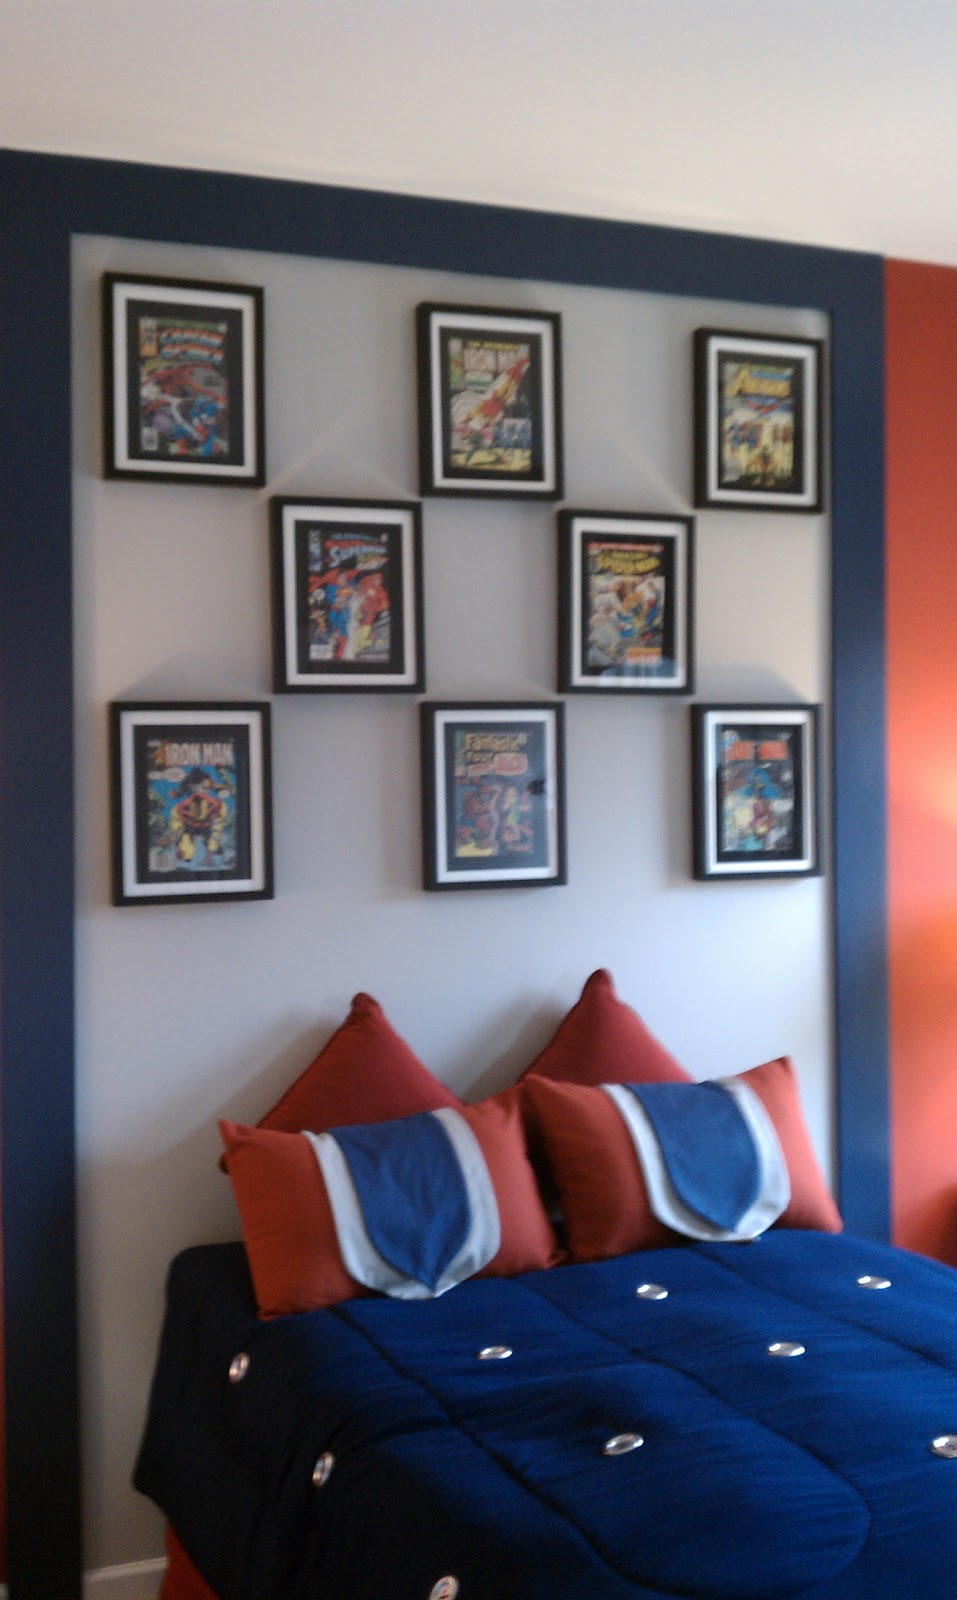 displaying 20 images for magazine collage on bedroom wall